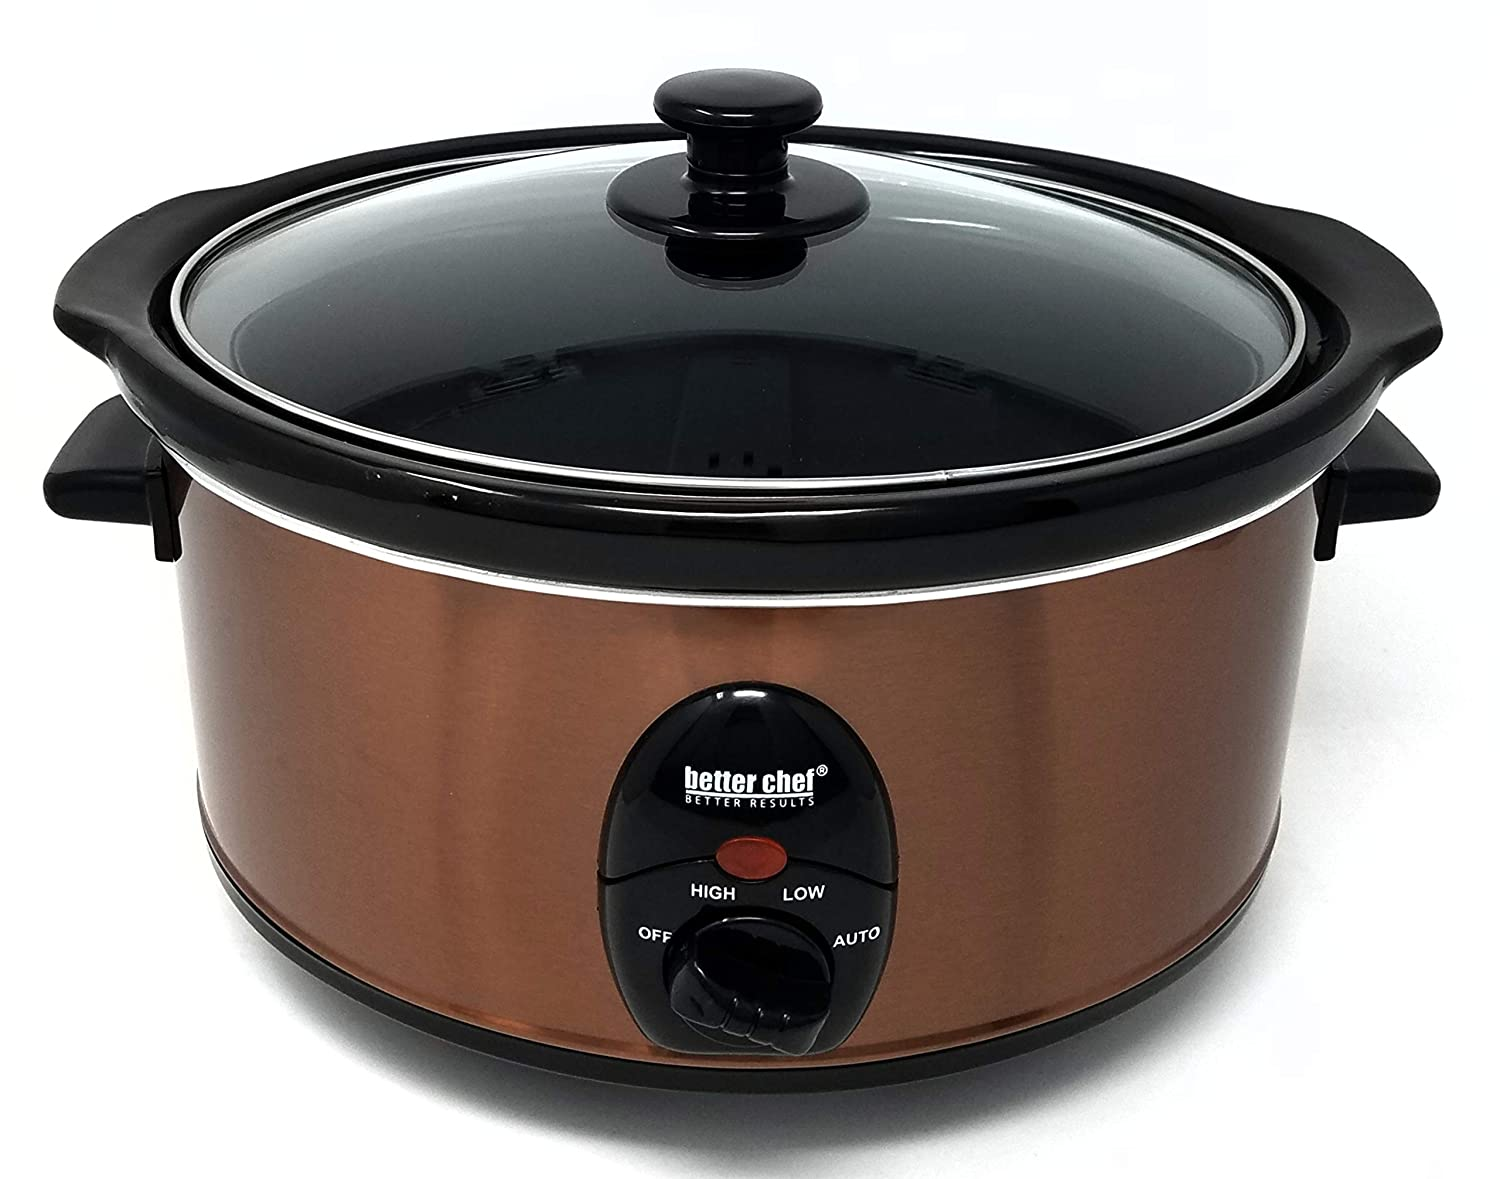 BETTER CHEF, IMPRESS, IM-456C, 3.5 LITER SLOW COOKER COPPER METALLIC WRAP BLACK REMOVABLE STONEWARE CROCK 3.7 QUART SIZE